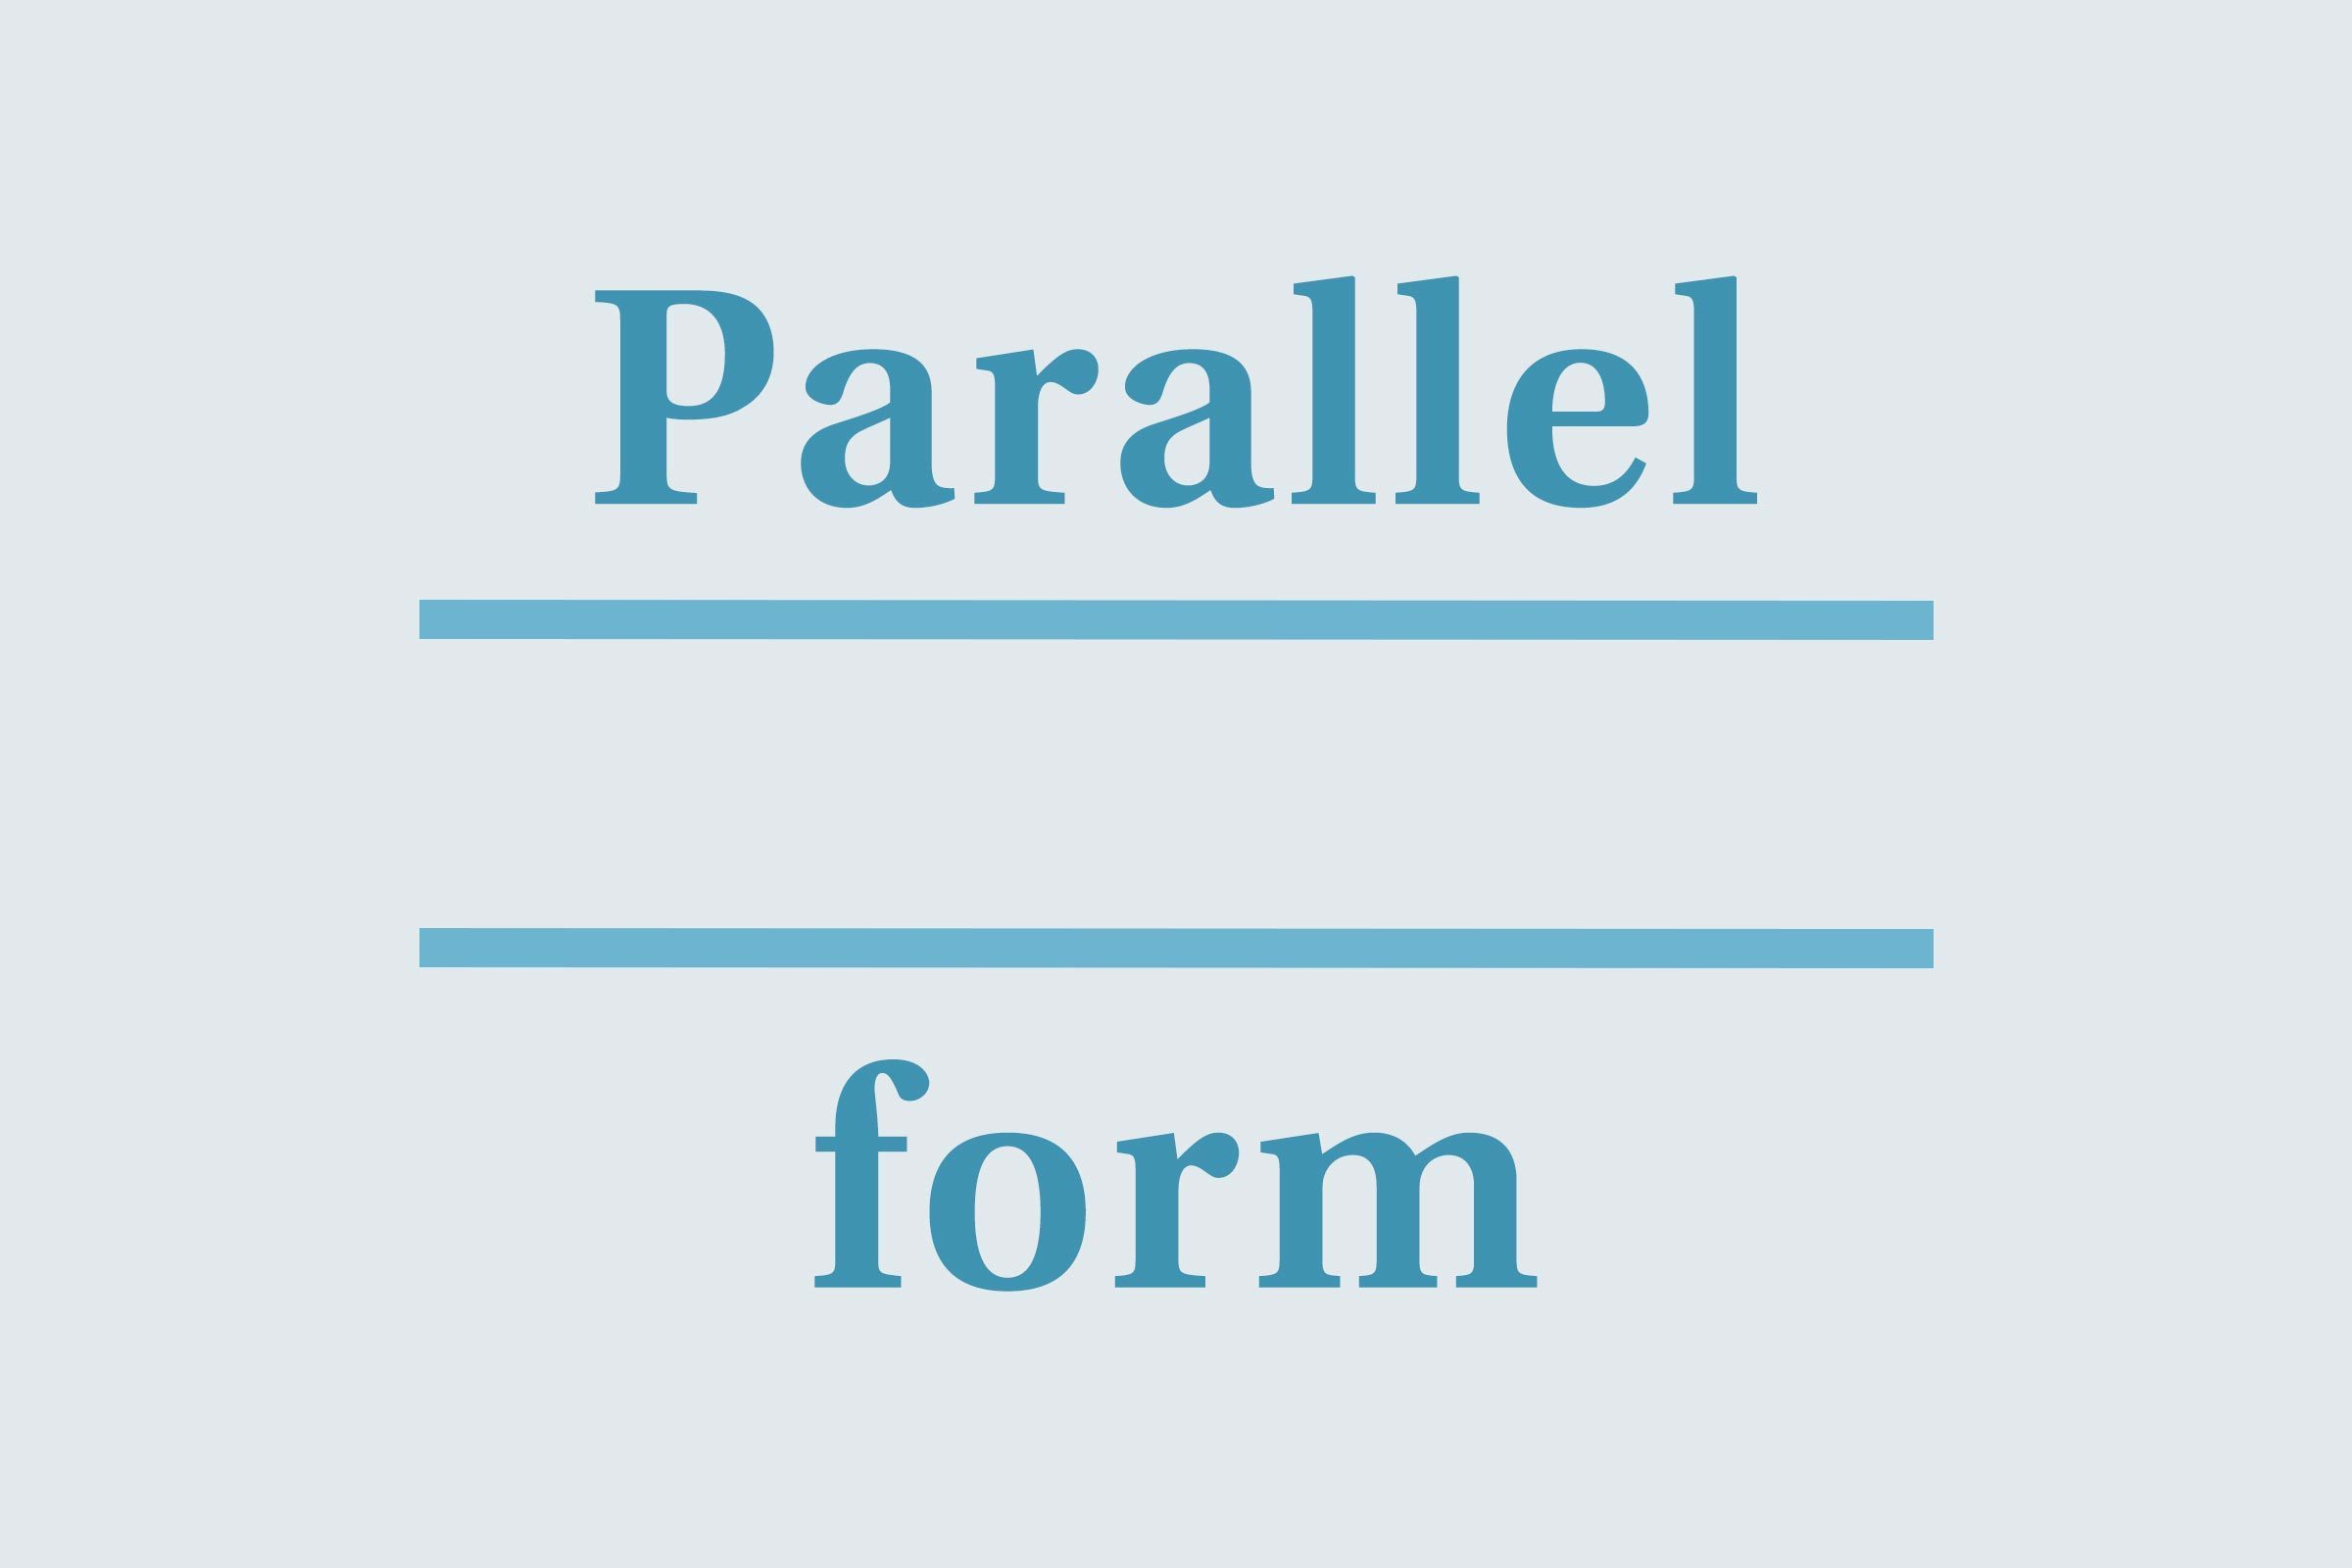 Use parallel form